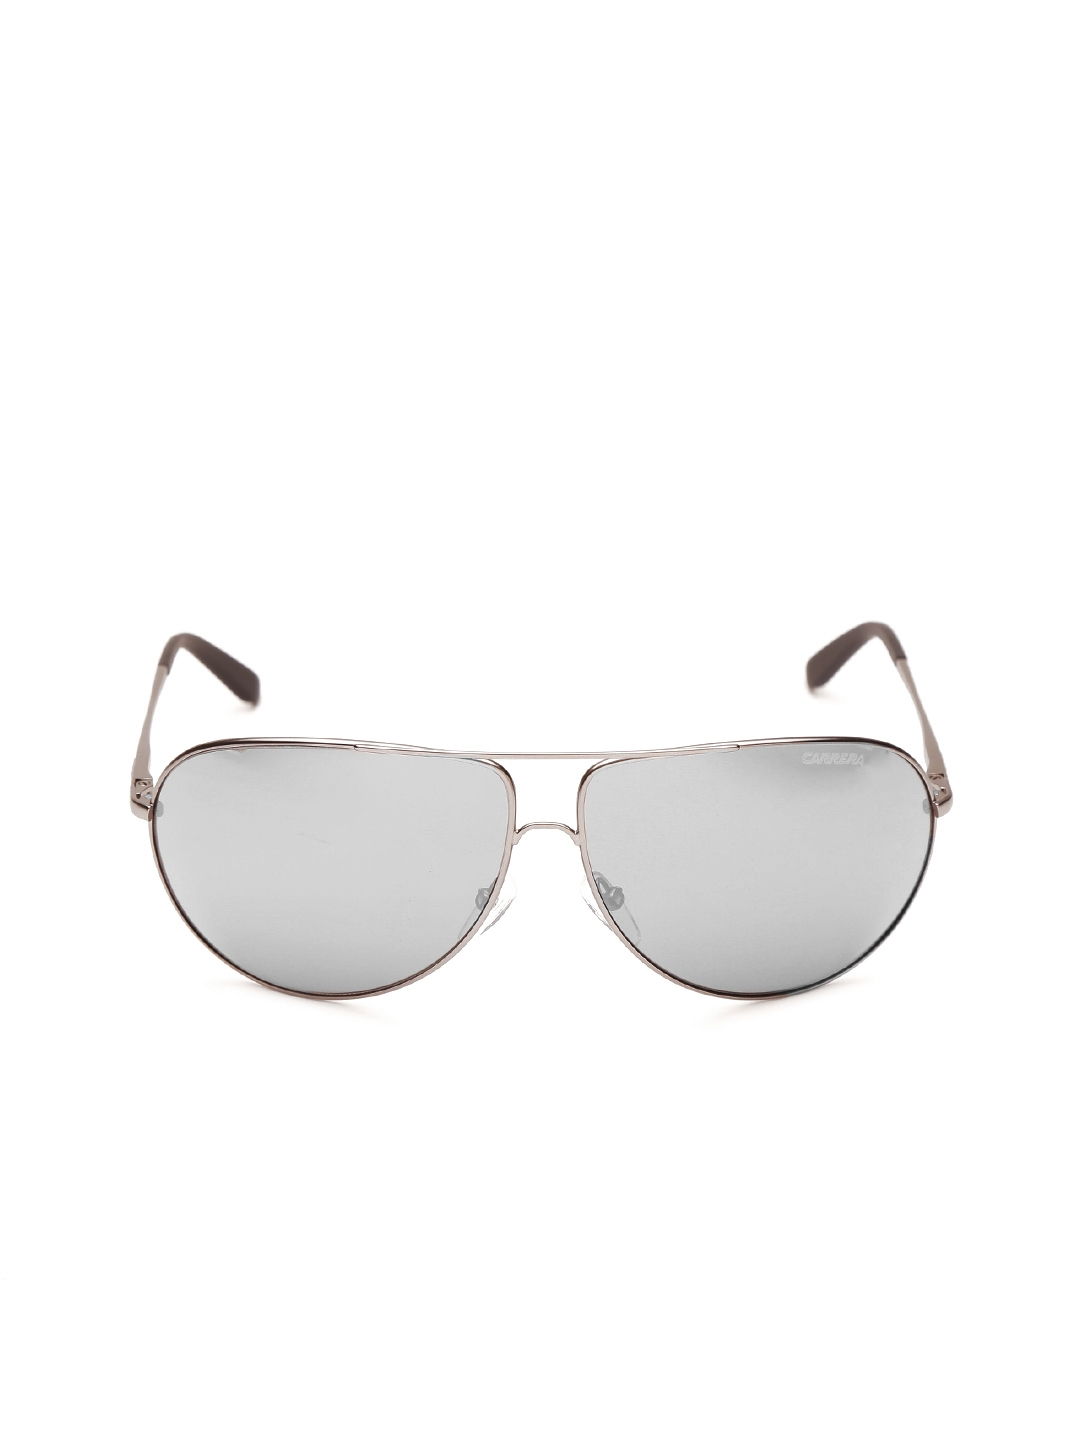 ba84da947ed5b Buy Carrera Unisex Mirrored Oval Sunglasses NEW GIPSY R80 64T4 ...